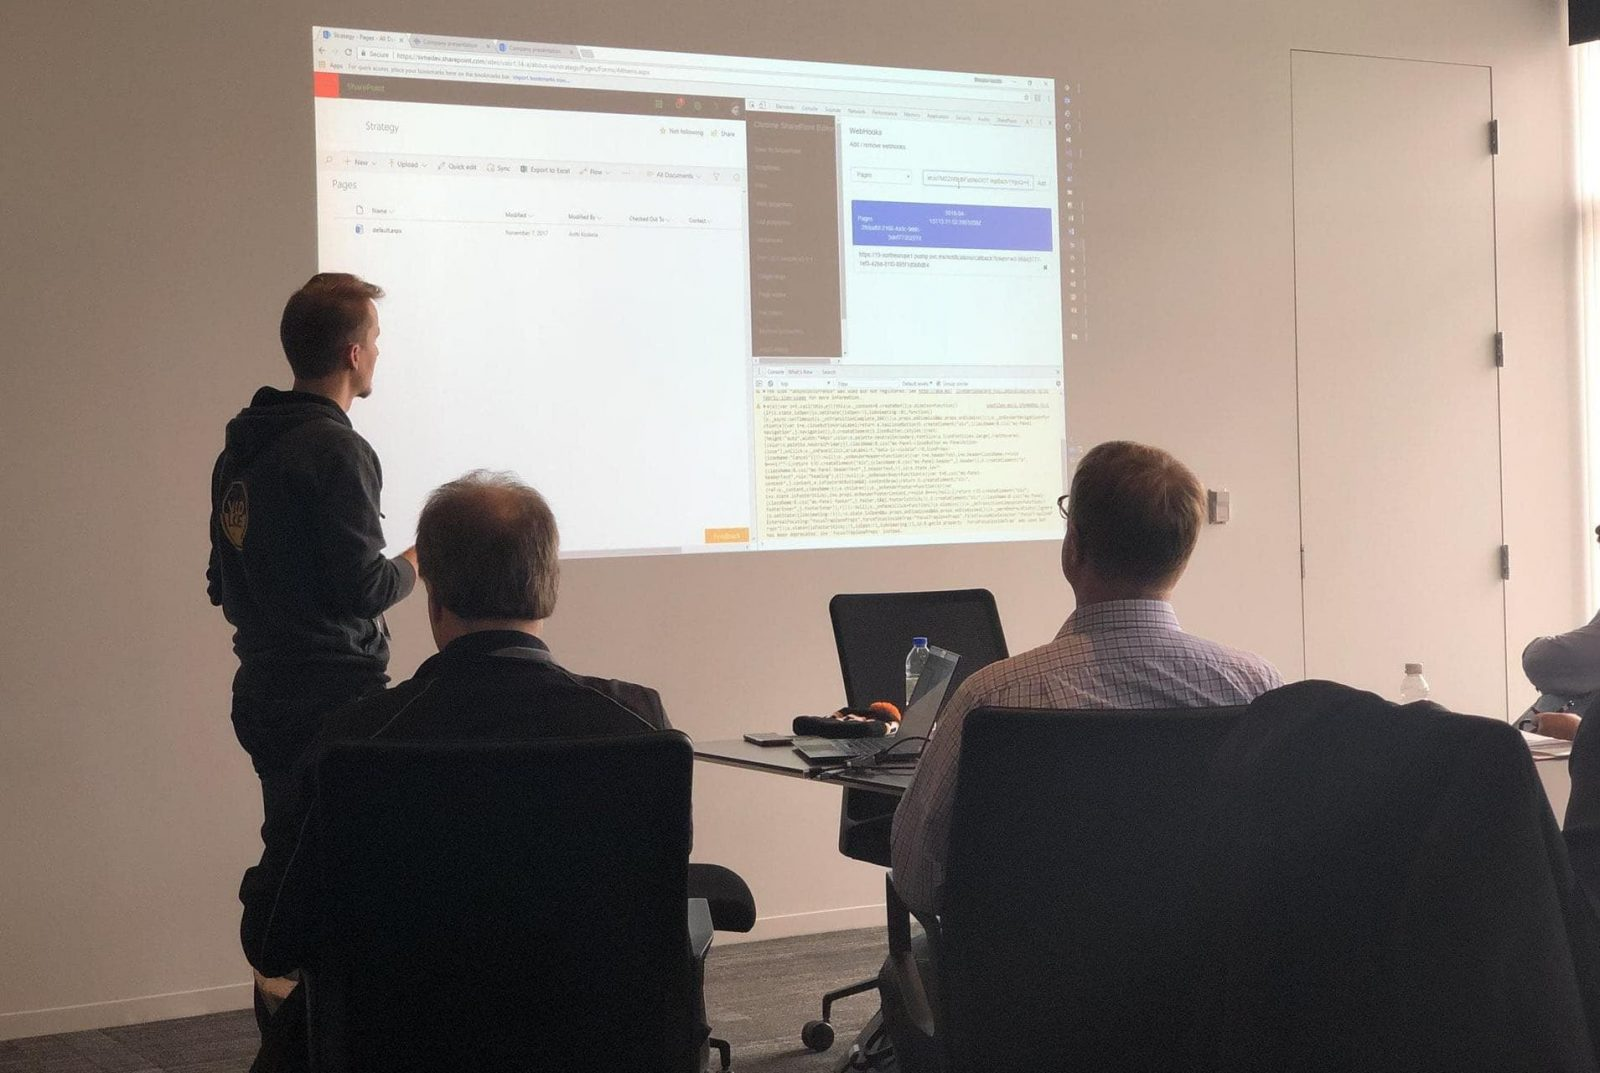 Antti K. Koskela's session at SharePoint Saturday New England - thanks for the photo Kanwal Khipple !